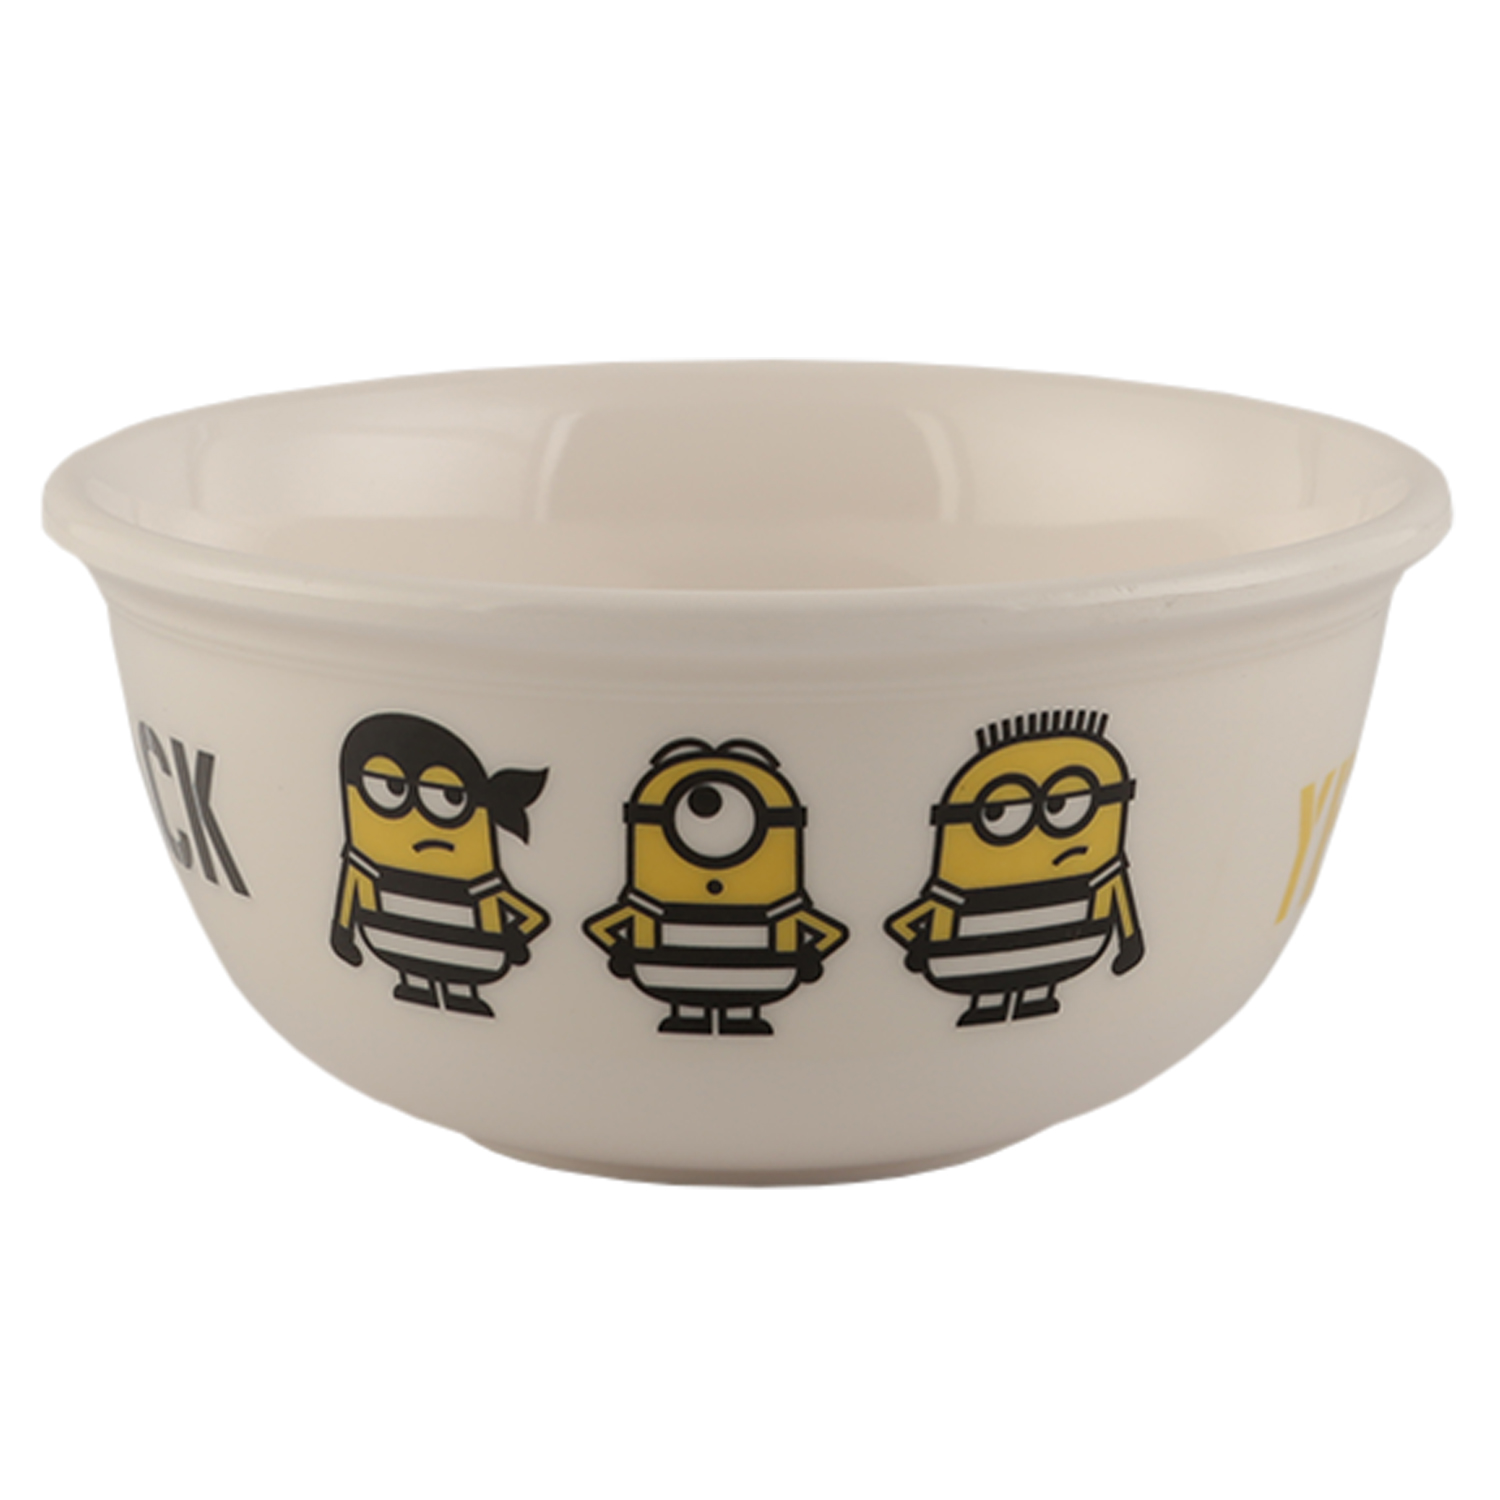 Kids Soup Bowls in Multicolor Colour by Servewell